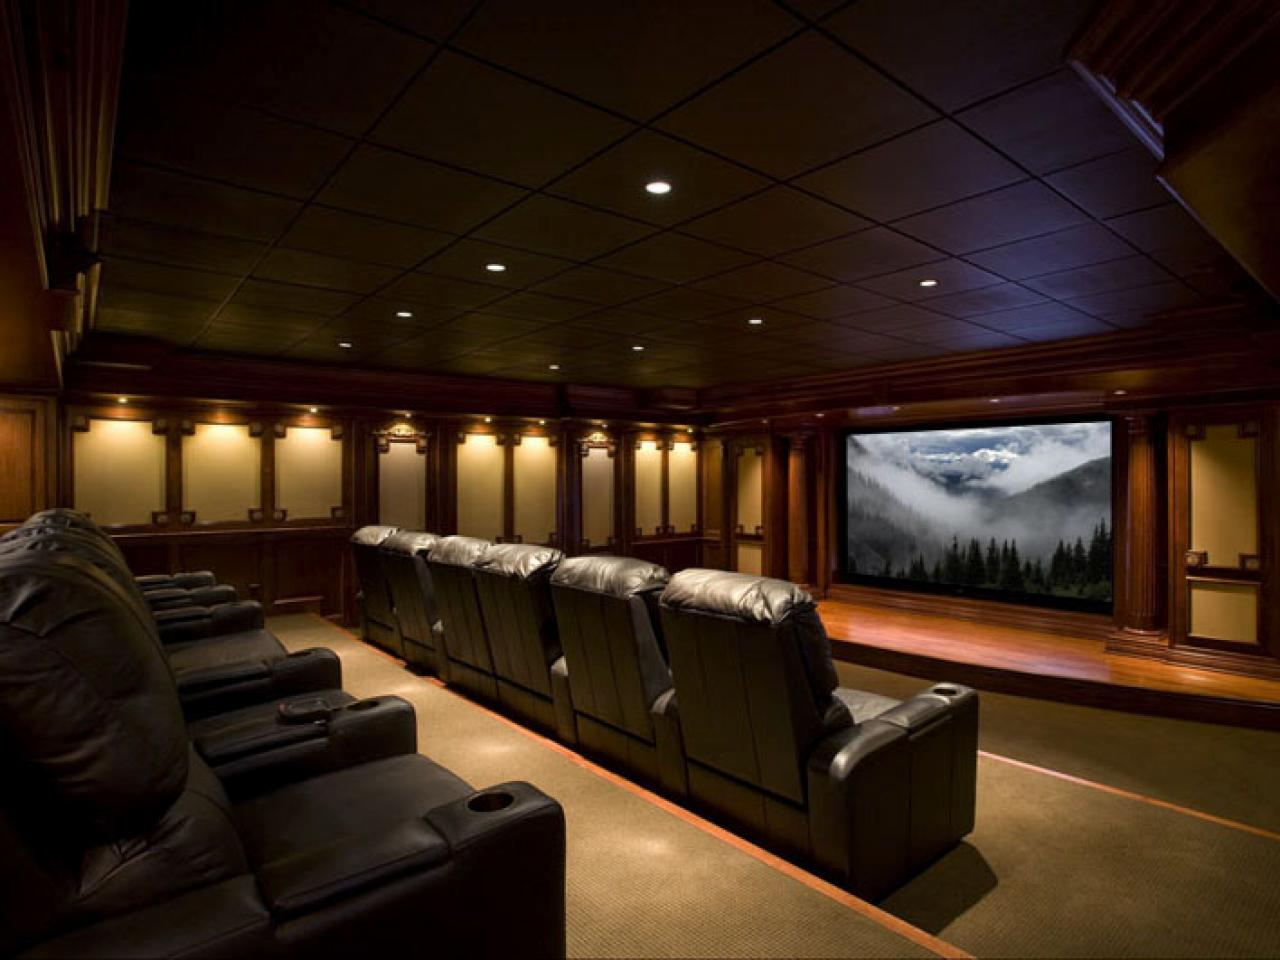 Media rooms and home theaters by budget home remodeling ideas for basements home theaters Home theater design ideas on a budget